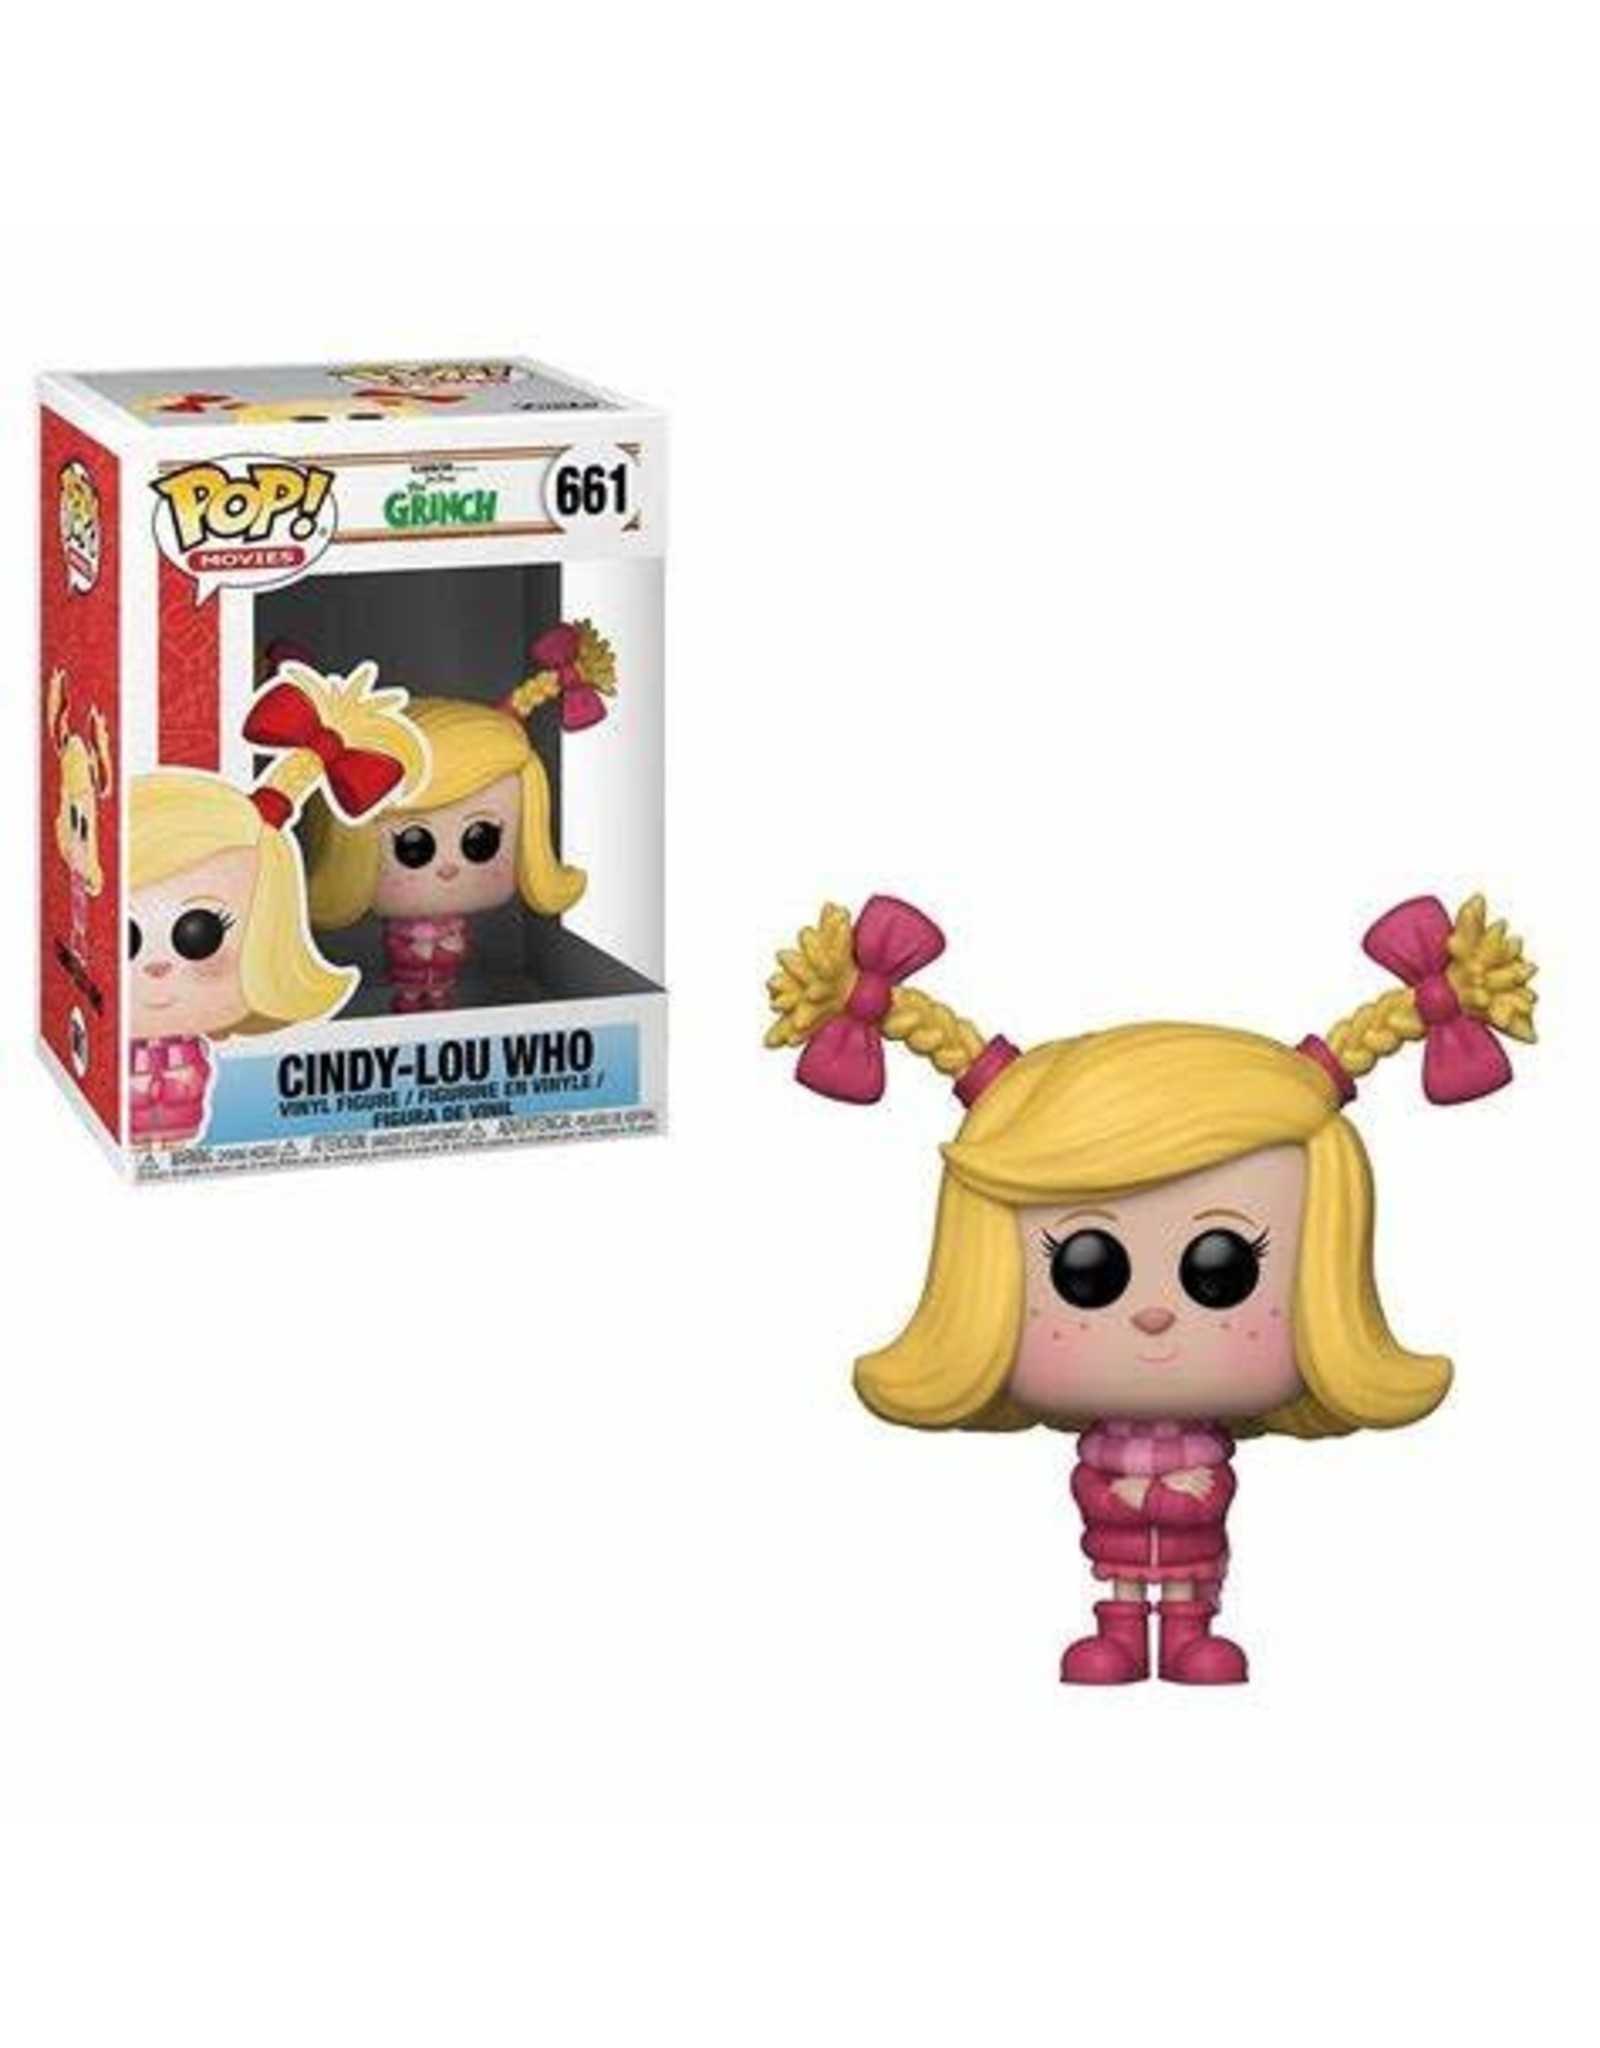 Funko THE GRINCH 2018 POP! N° 661 - Cindy-Lou Who